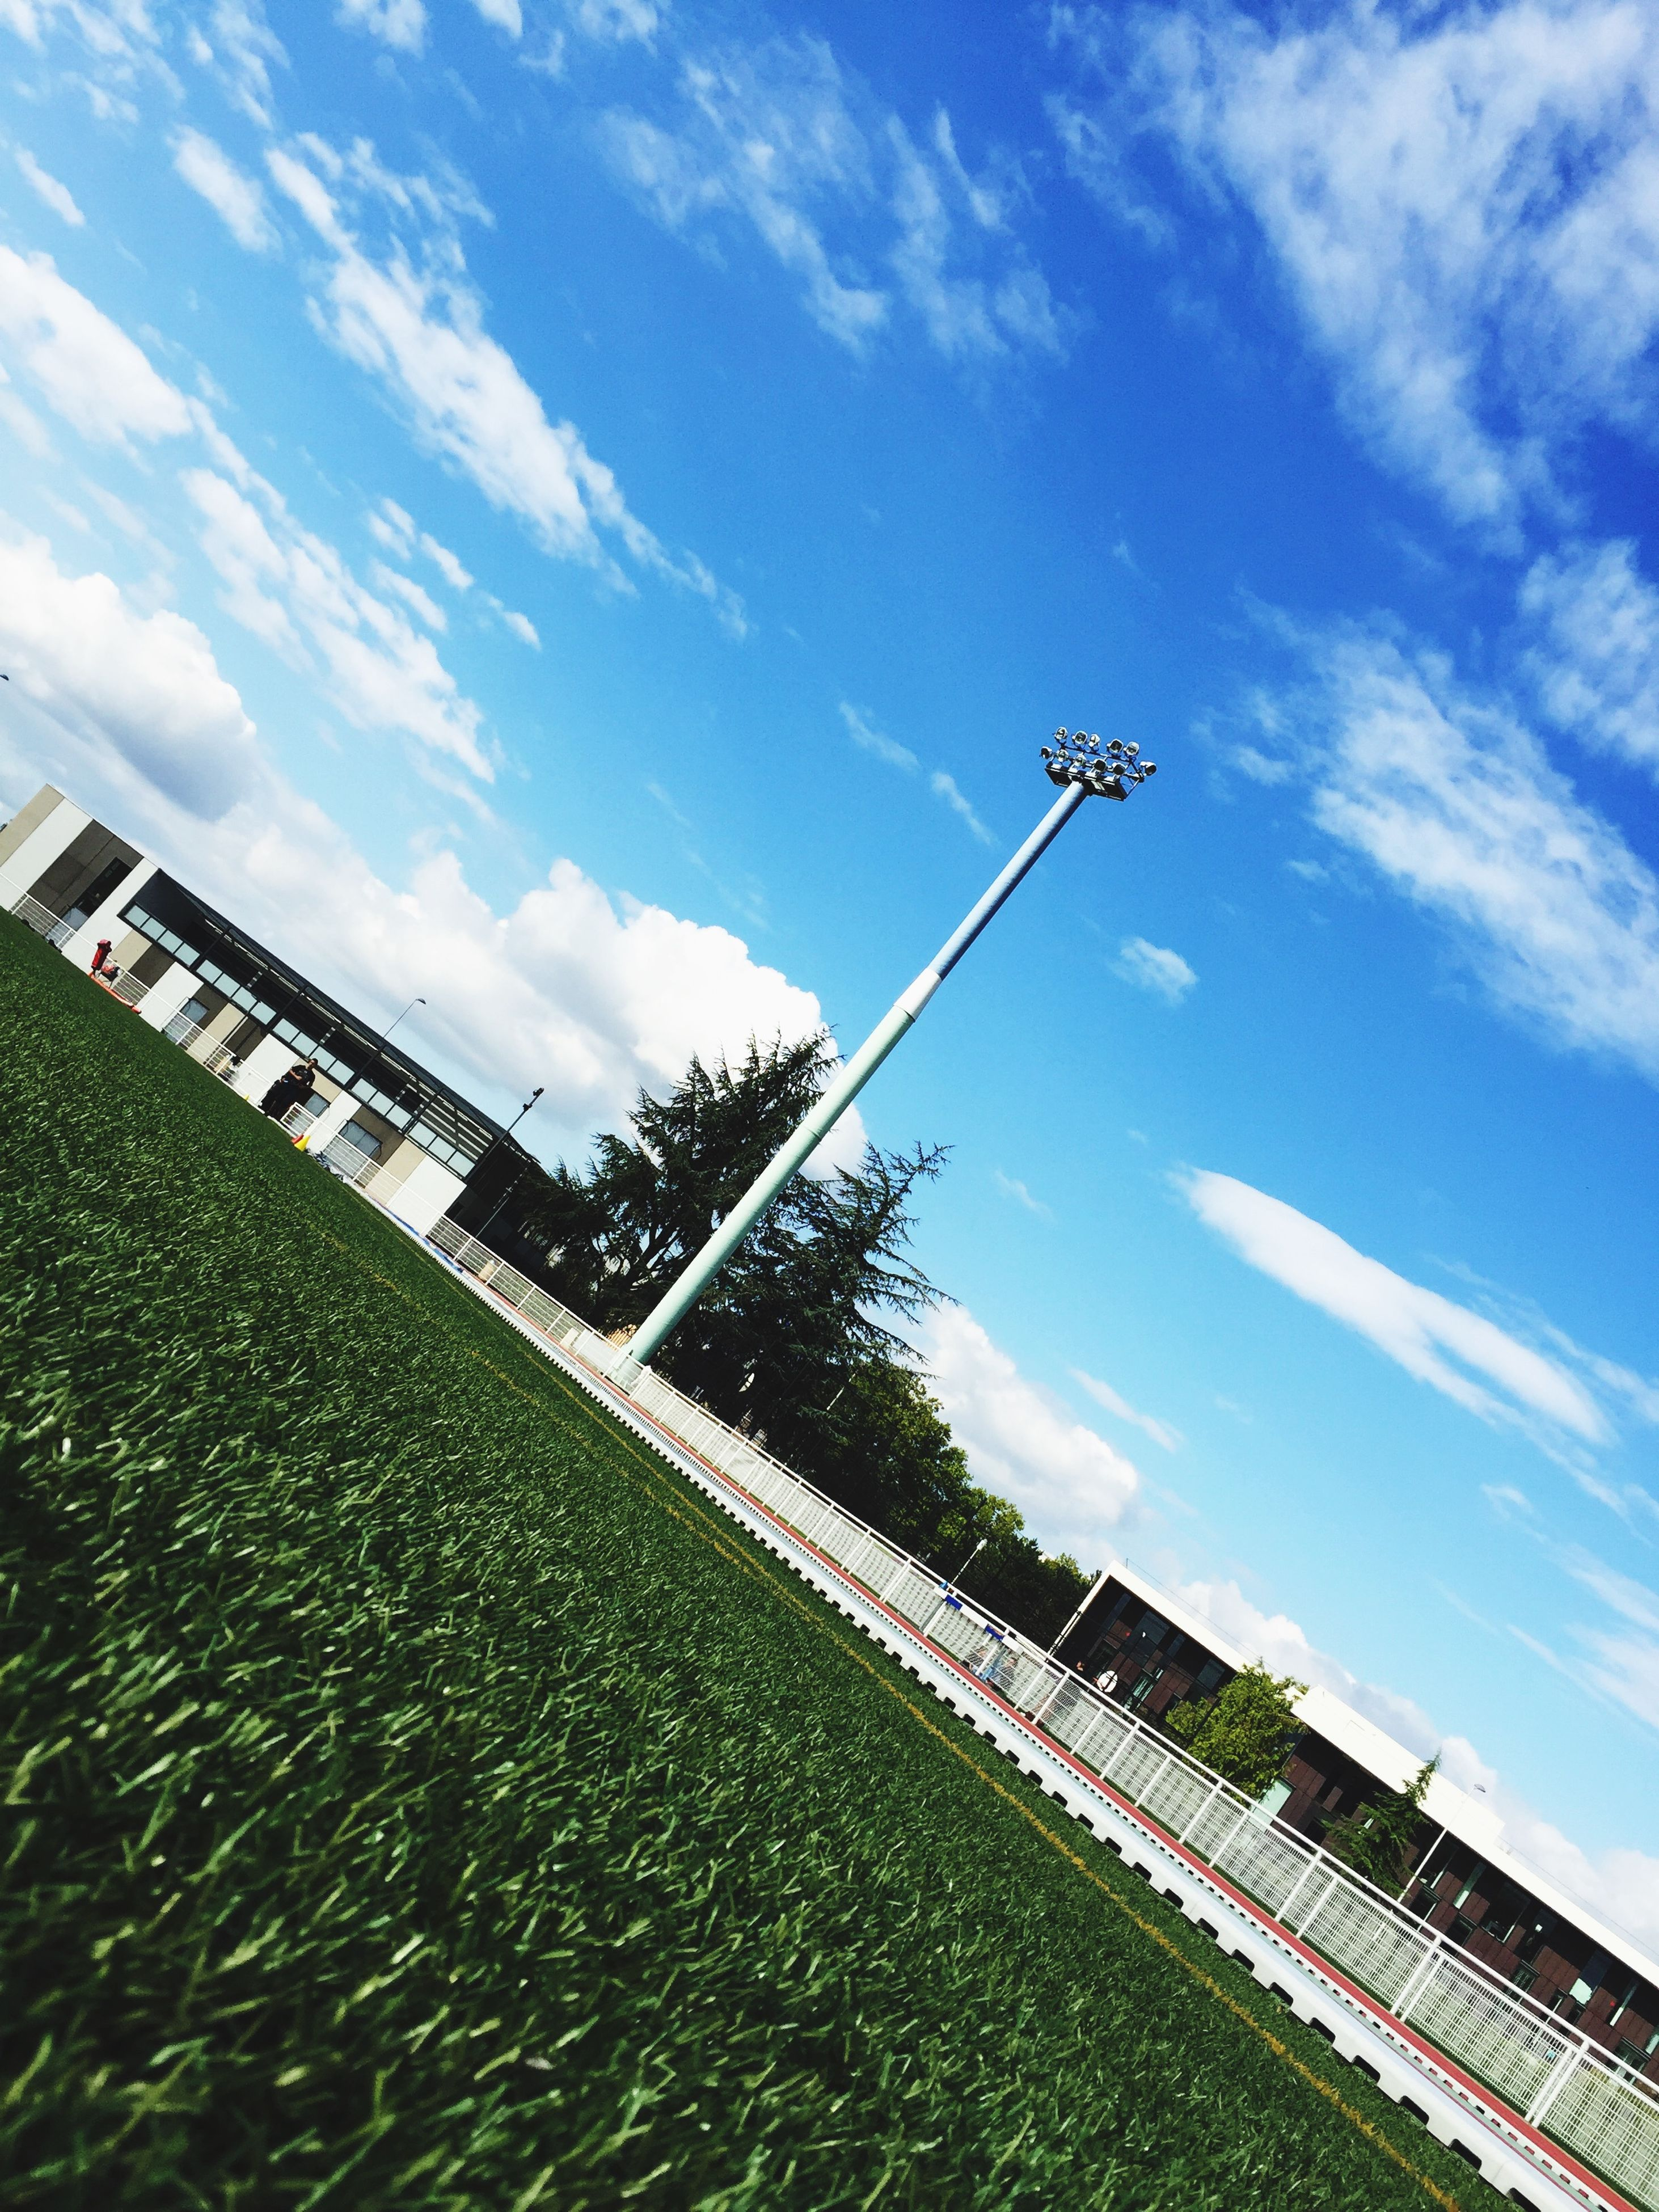 sky, low angle view, blue, cloud - sky, cloud, day, field, nature, tree, tranquility, grass, growth, connection, no people, tranquil scene, outdoors, cloudy, street light, sunlight, built structure